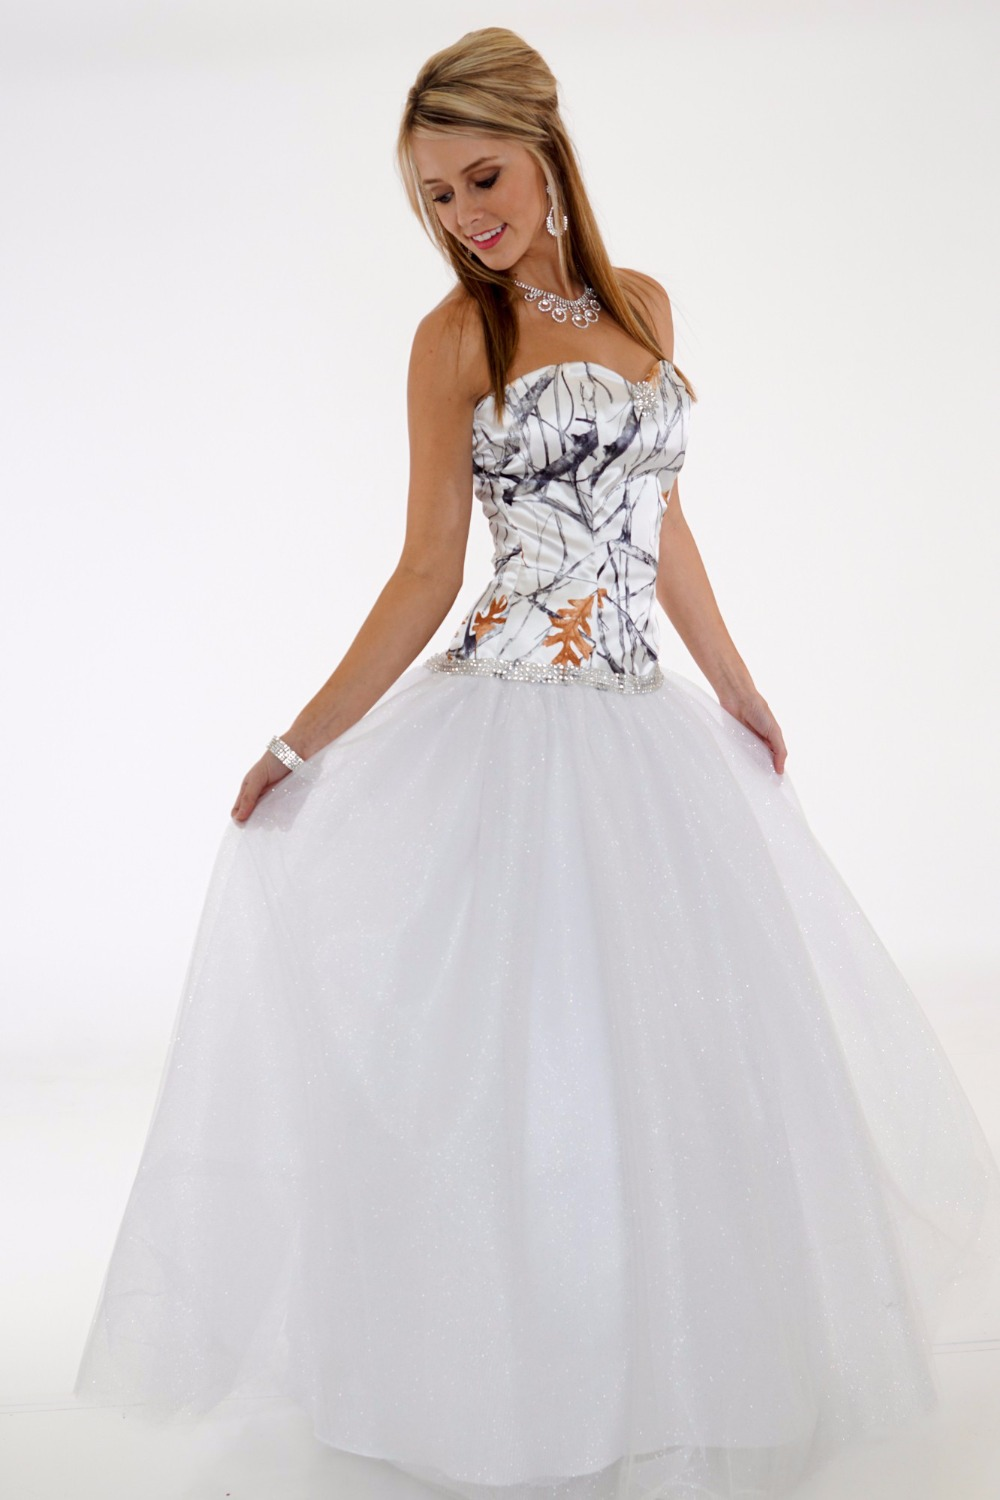 Camouflage Wedding Dress 2019 Vestido De Noiva White Camo Wedding Dresses China Custom Make Free Shipping Suitable For Men, Women, And Children